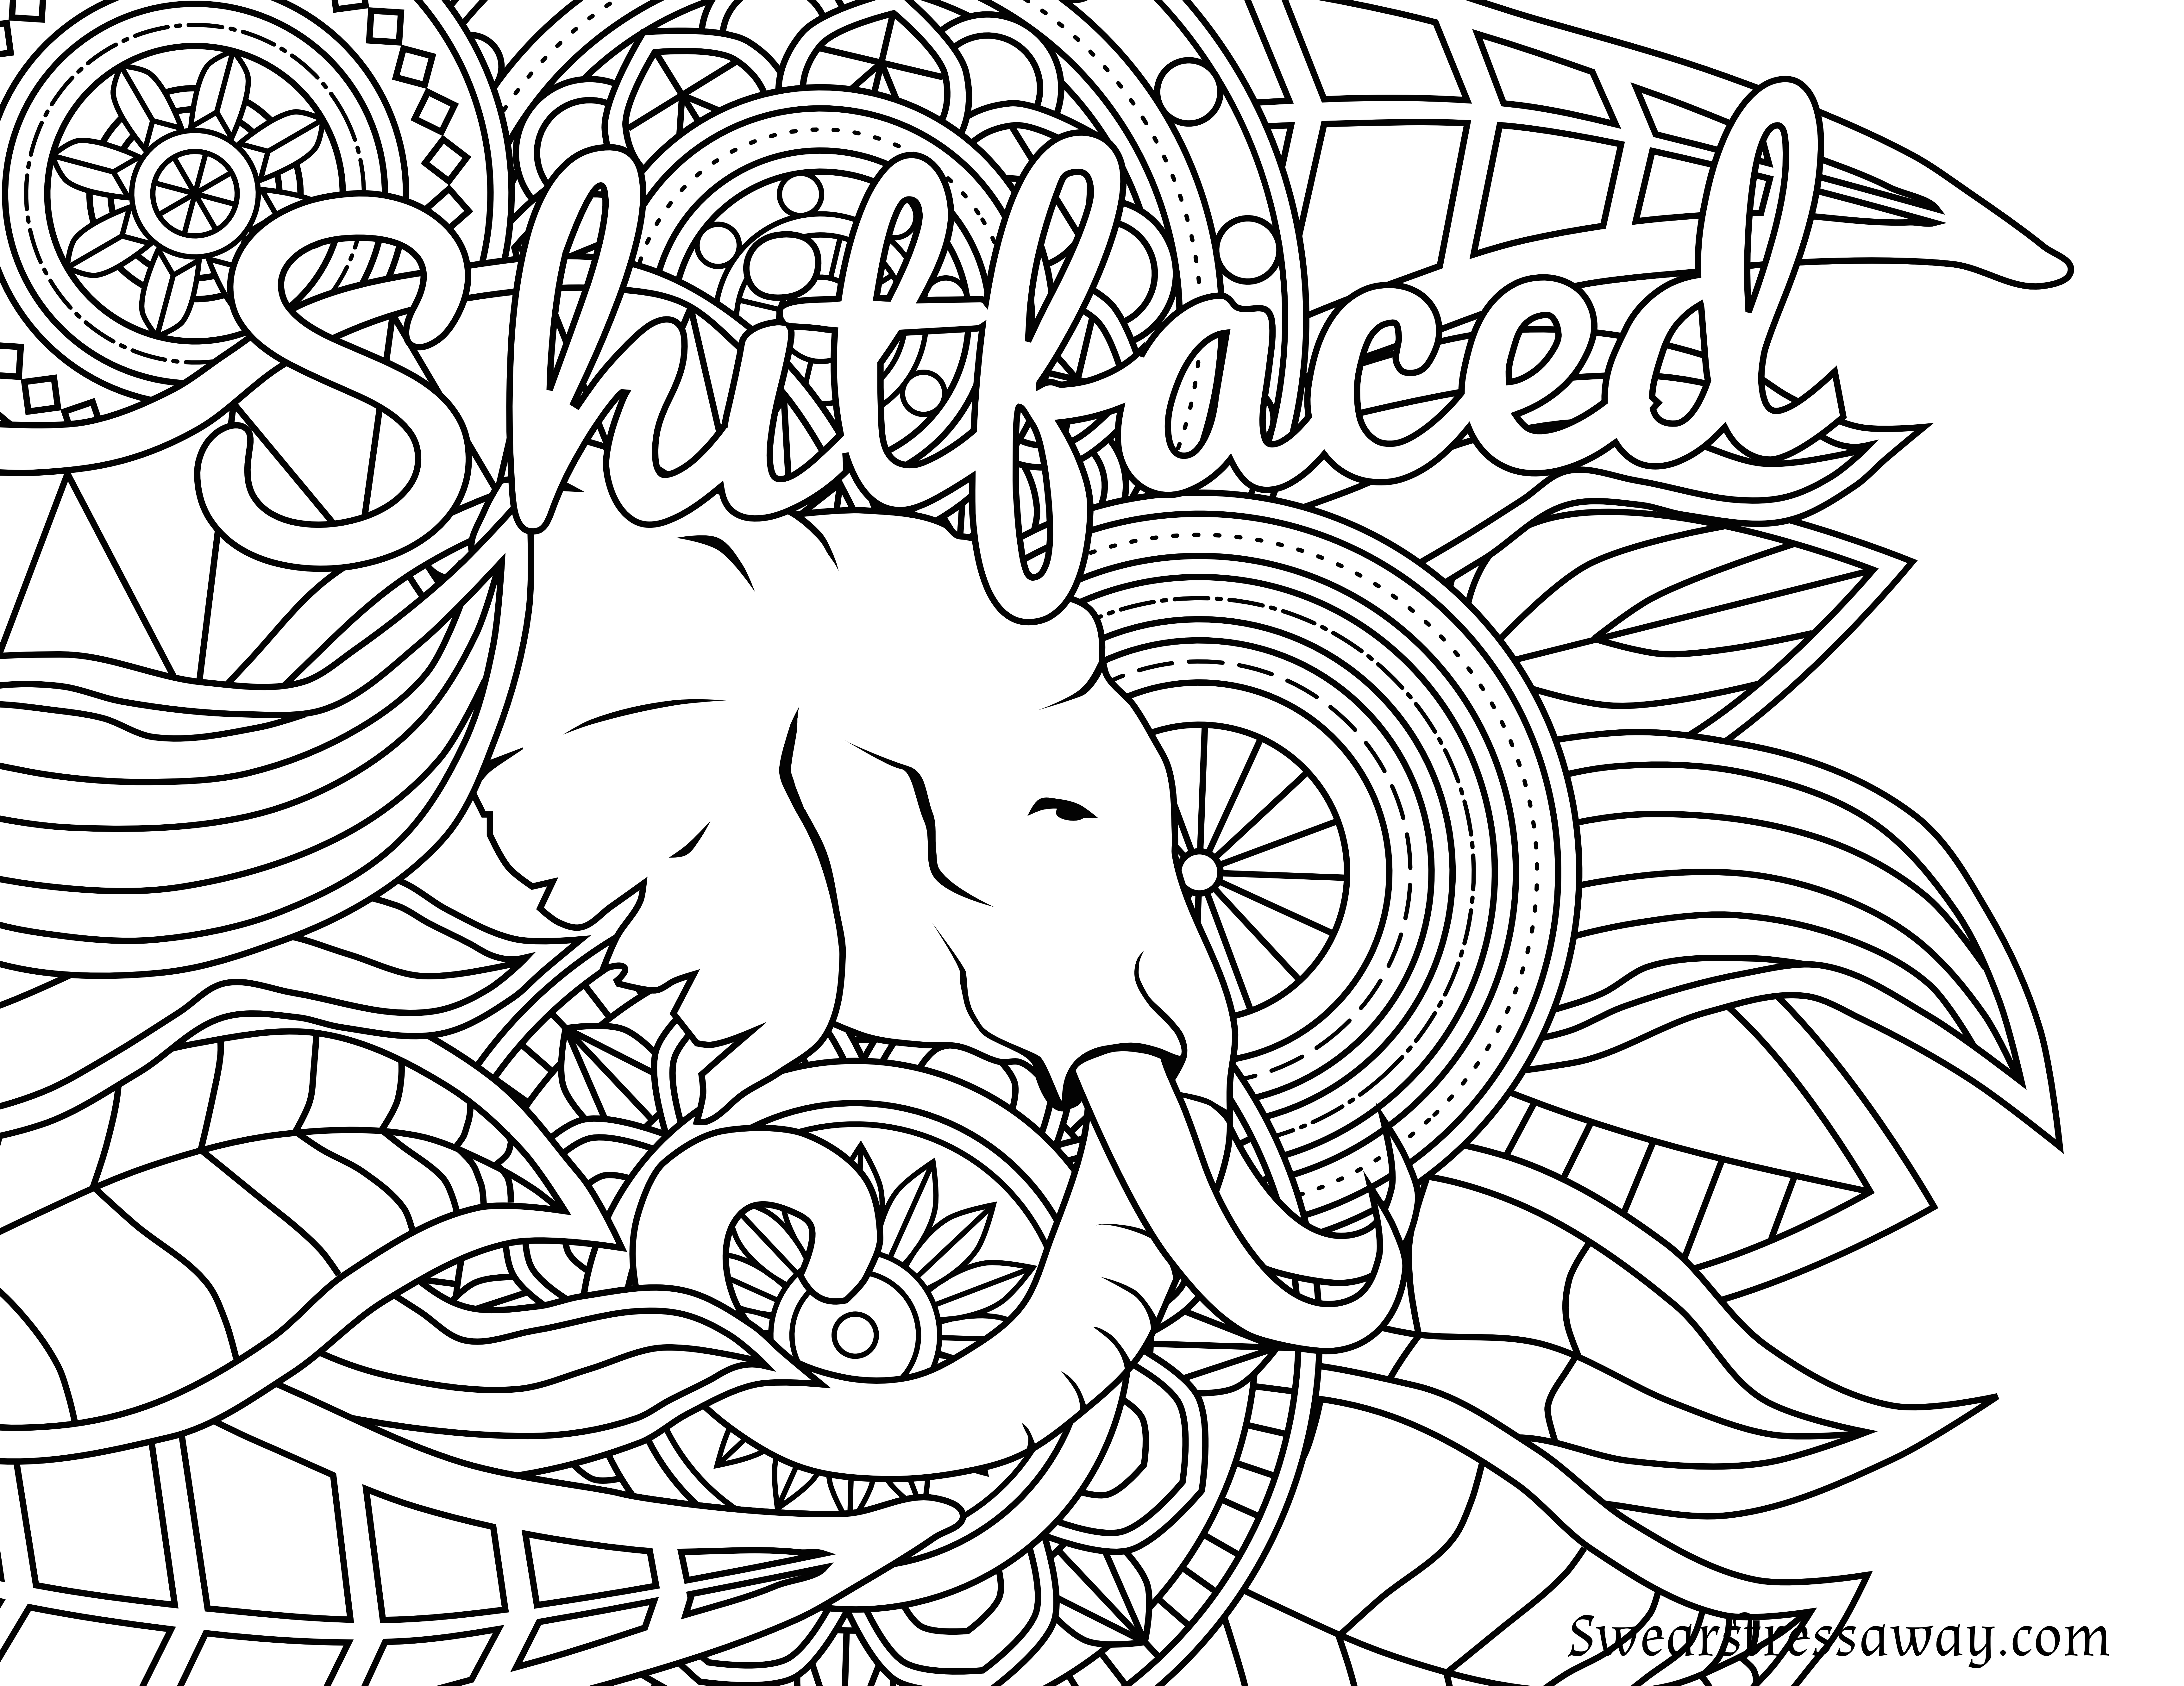 Free Printable Coloring Page - Shitfaced - Swear Word Coloring Page - Swear Word Coloring Pages Printable Free